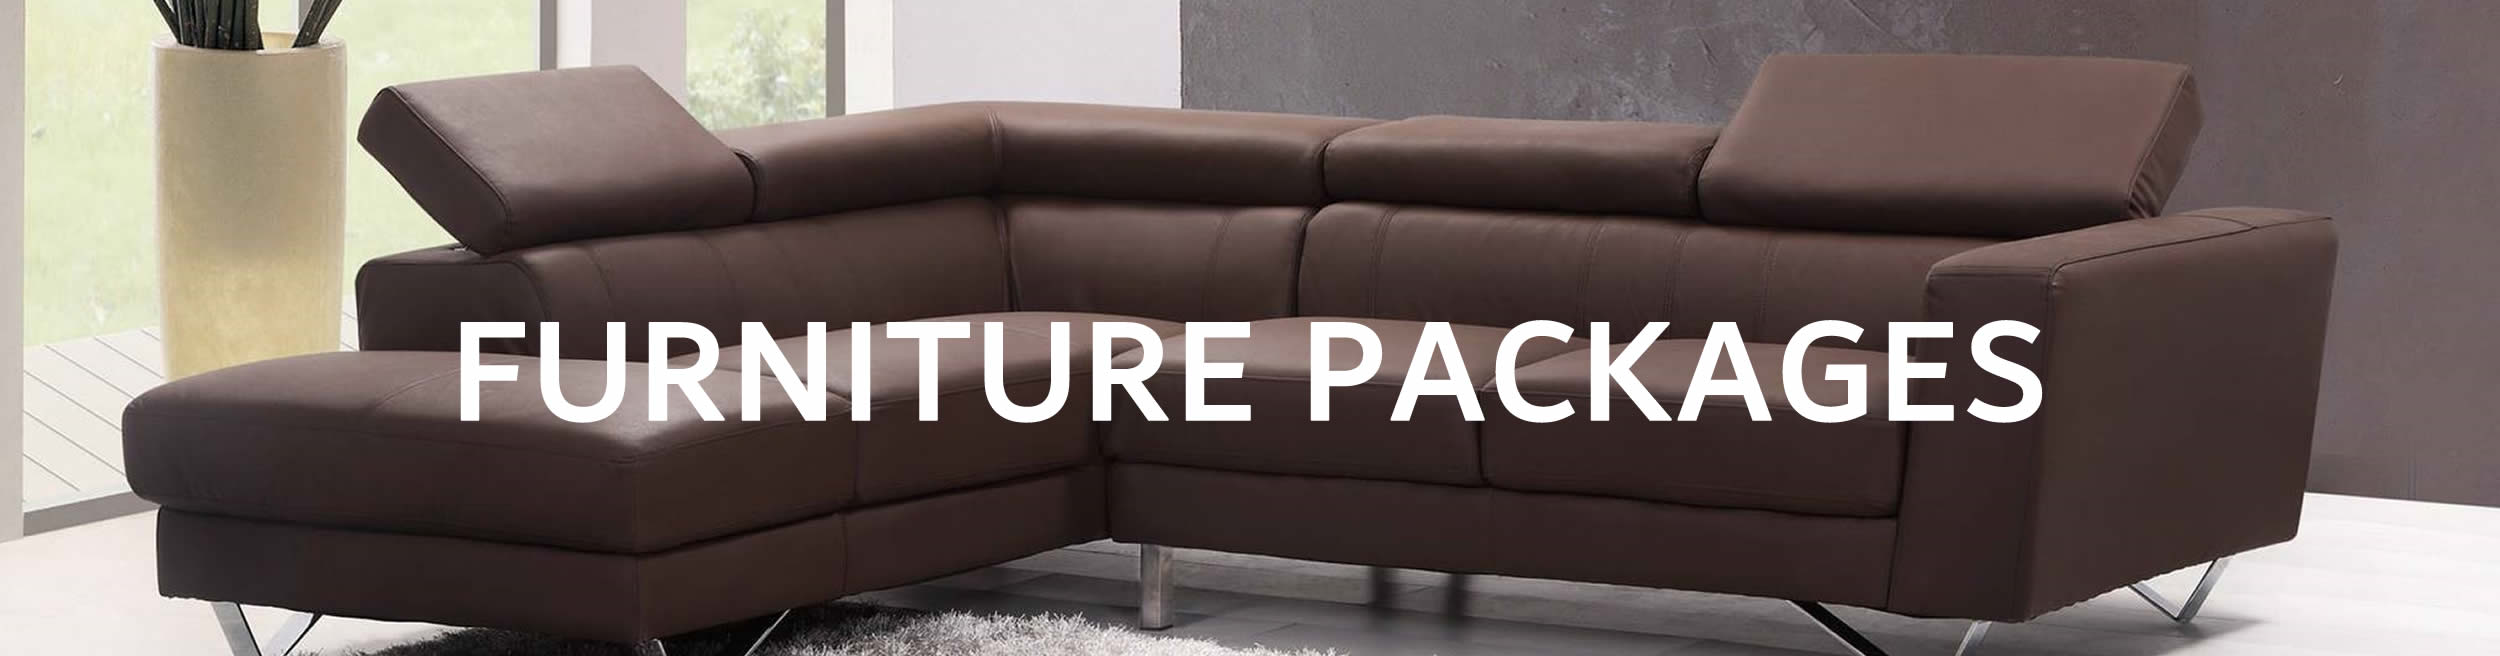 Furniture packages banner